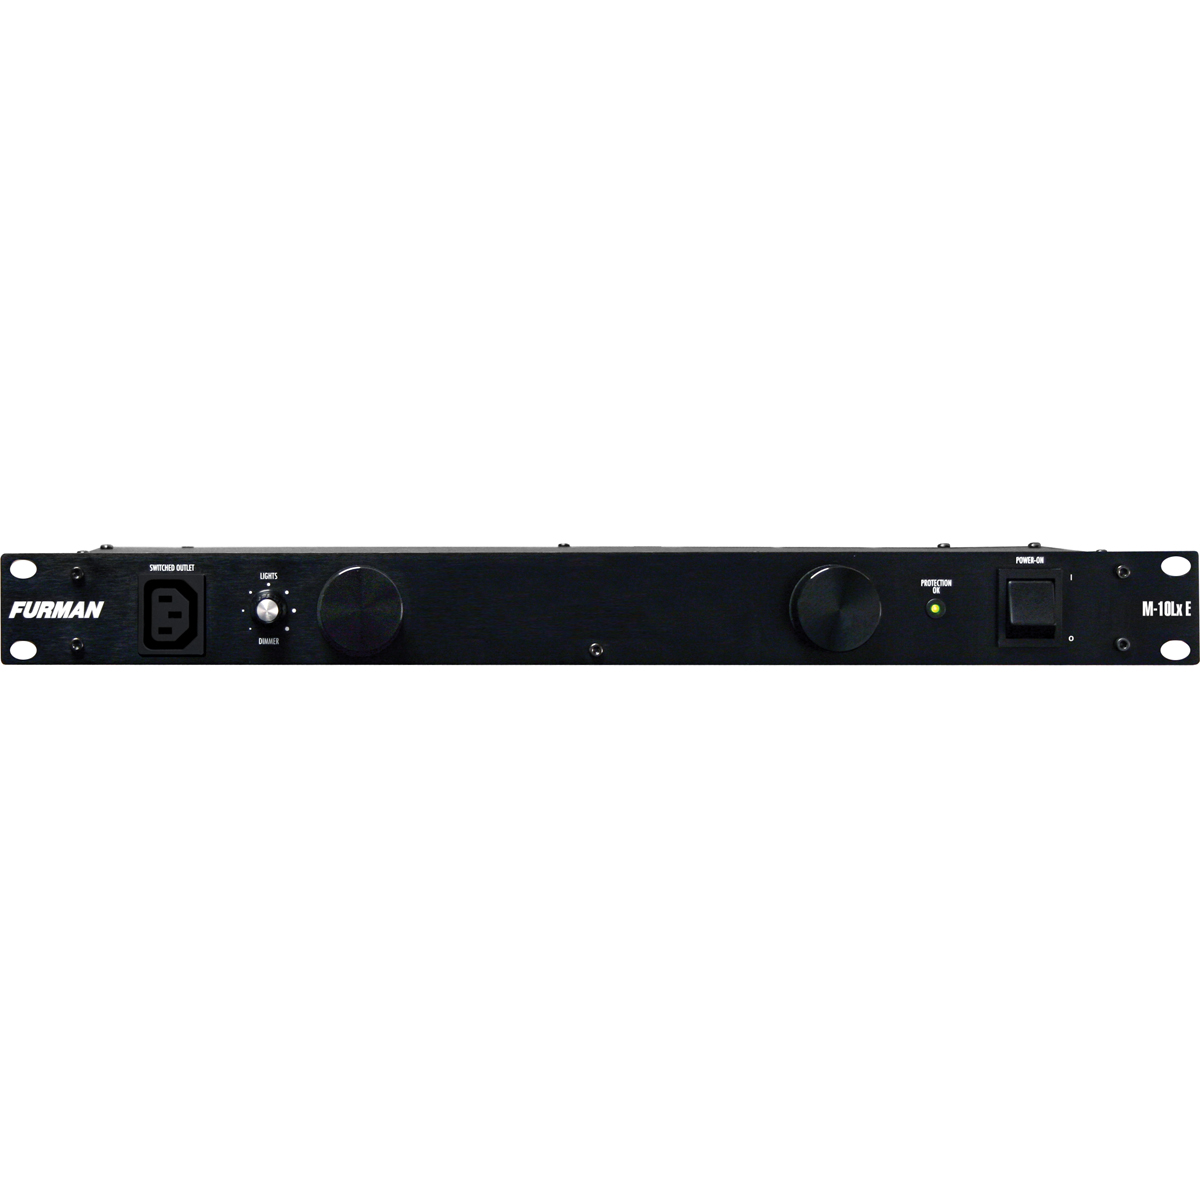 Afbeelding van Furman M-10 LXE power conditioner met ledverlichting